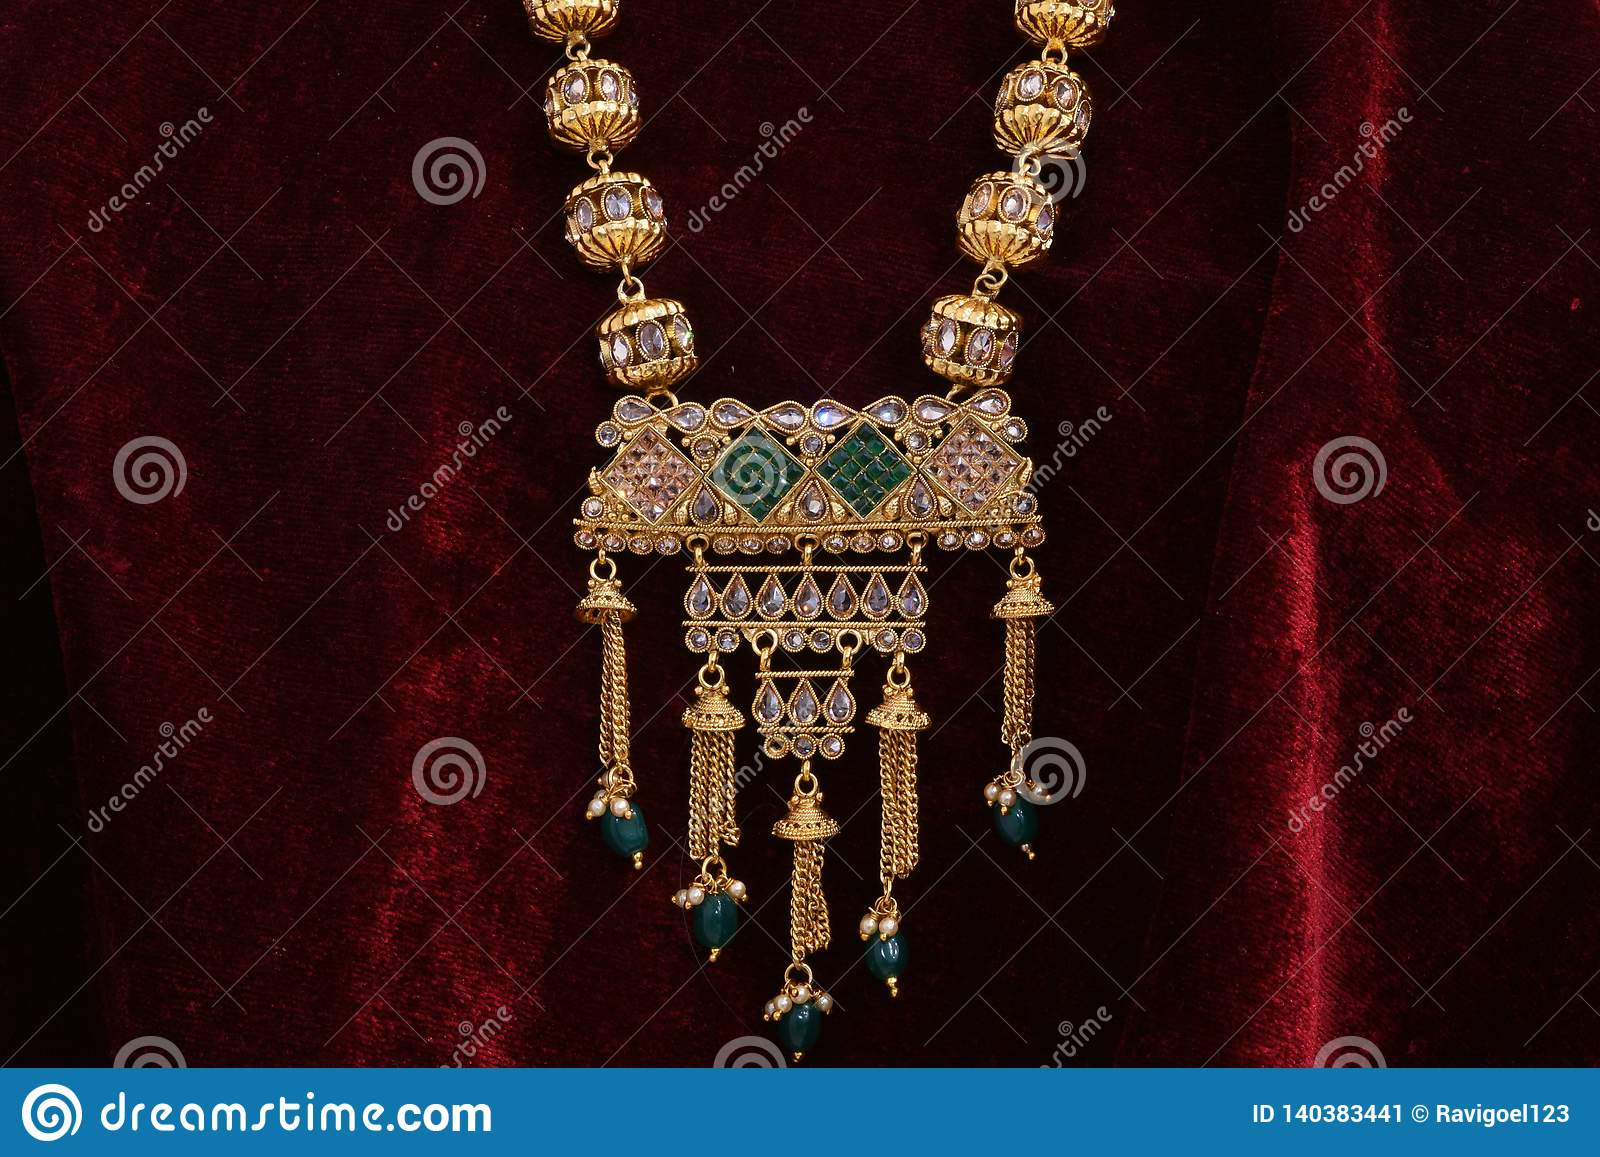 Golden Jewelry Fancy Designer Chain Pendant Neck Set For Woman Fashion Stock Image Image Of Dominant Header 140383441